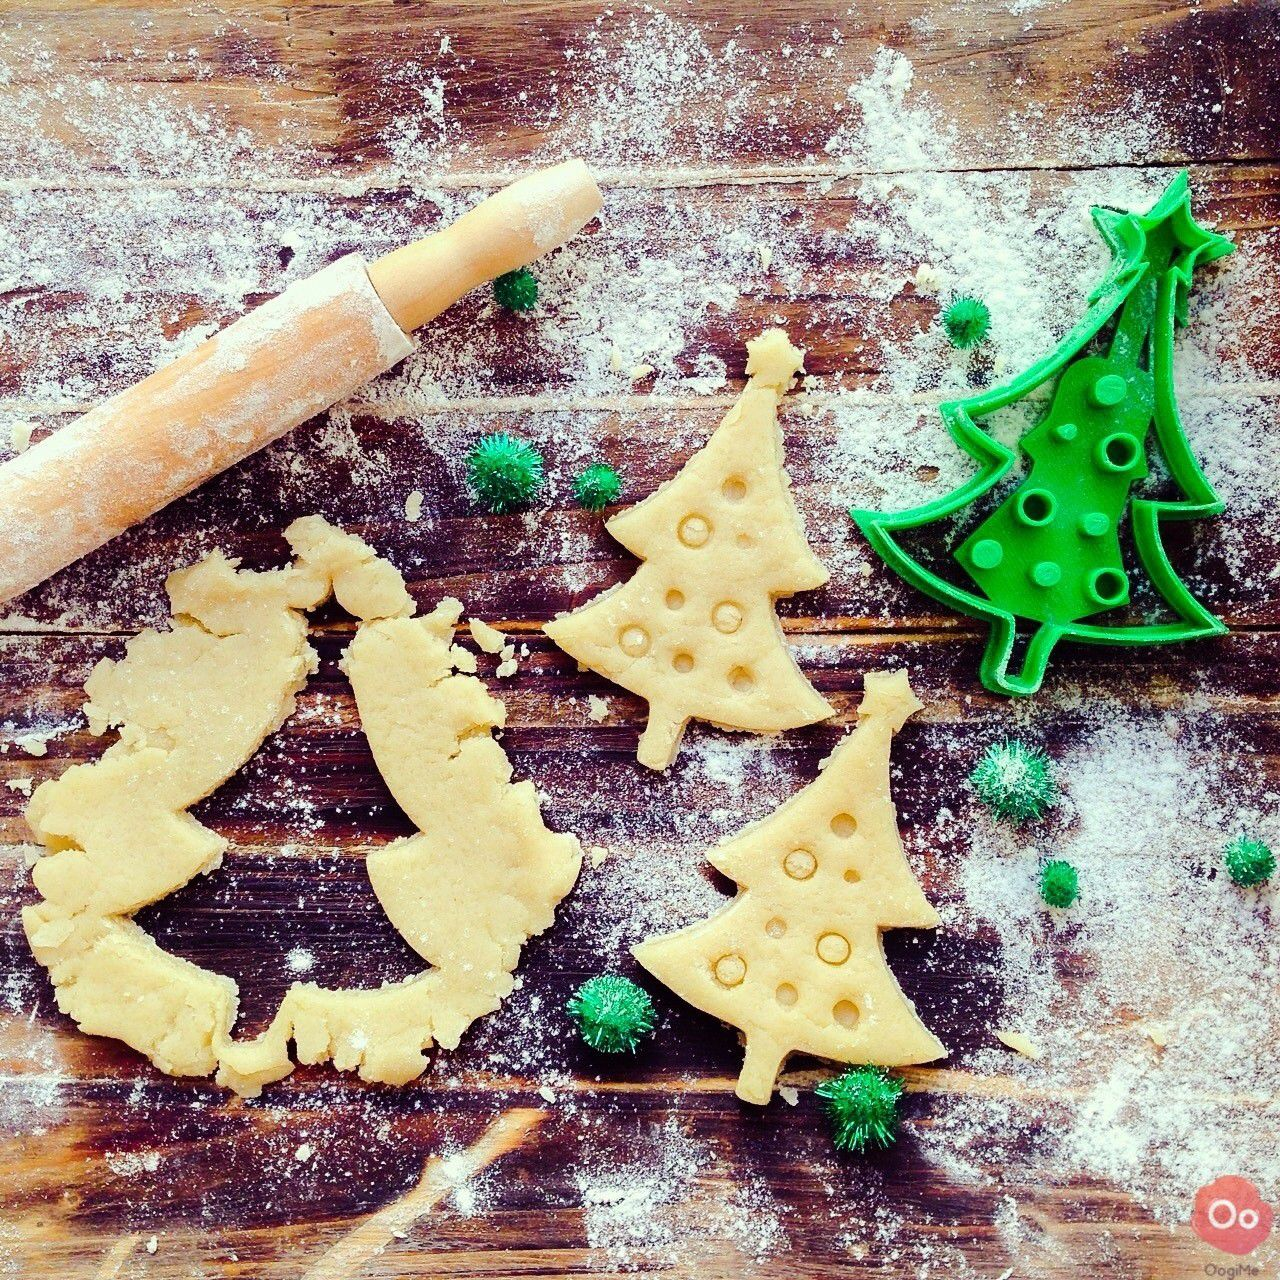 Christmas_Tree__Cookie_Cutter_2.jpg Download free STL file Christmas Tree Cookie Cutter • 3D printer model, OogiMe